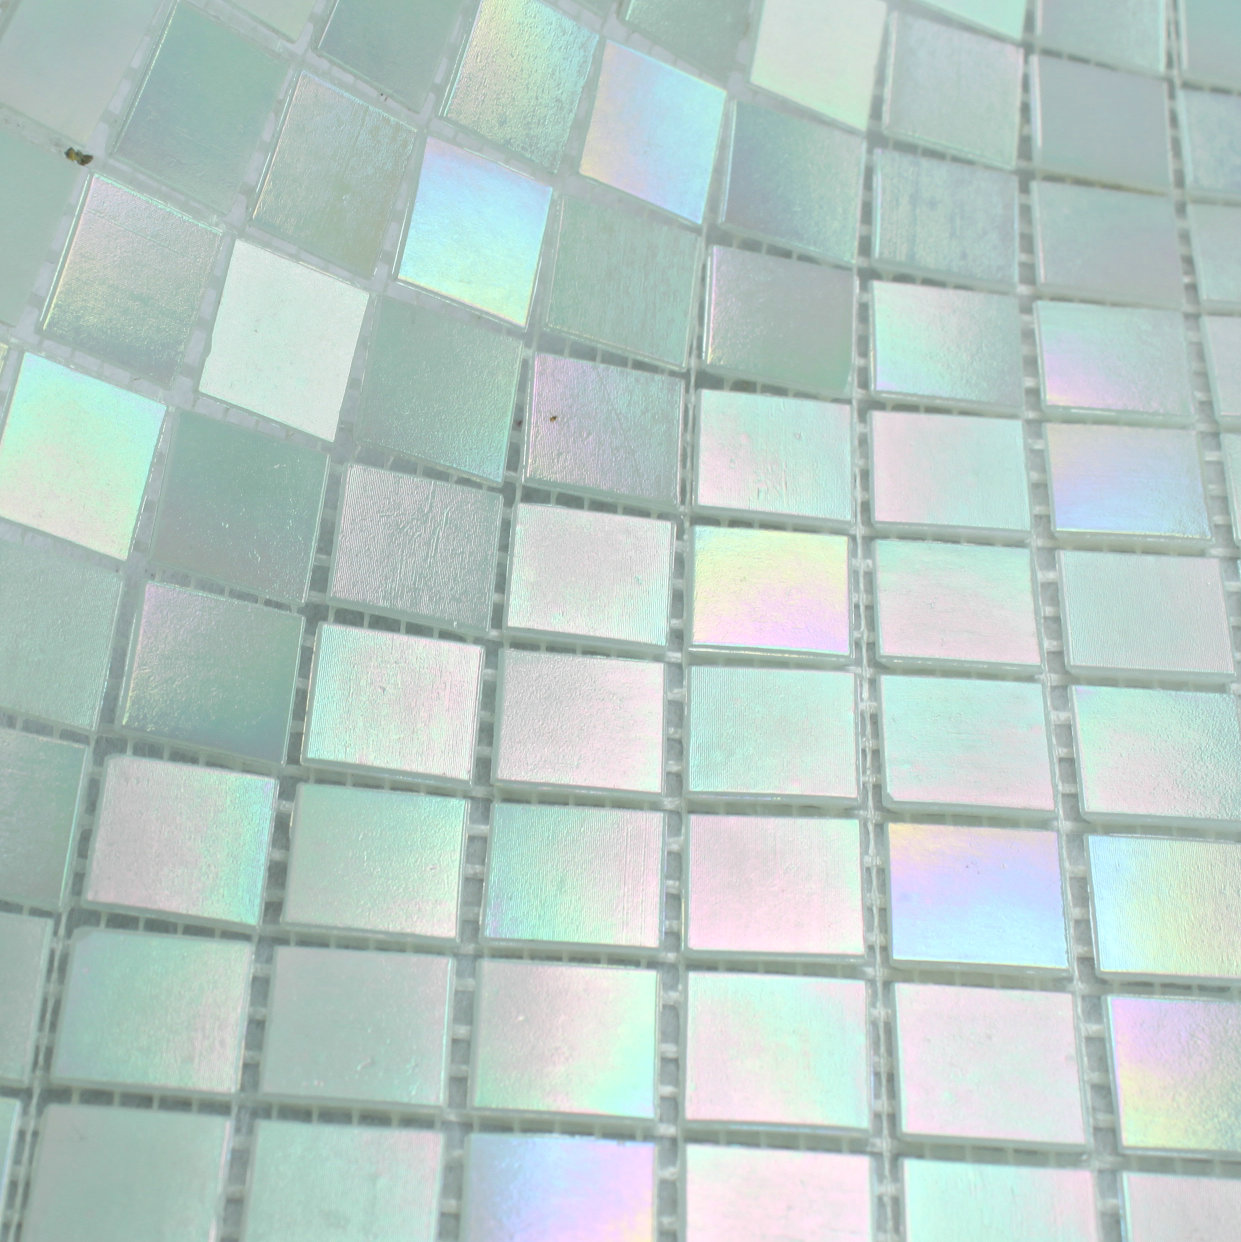 13 Mirror Tiles Silver Bathroom Wall Sheets Crystal Diamond Mosaic ...